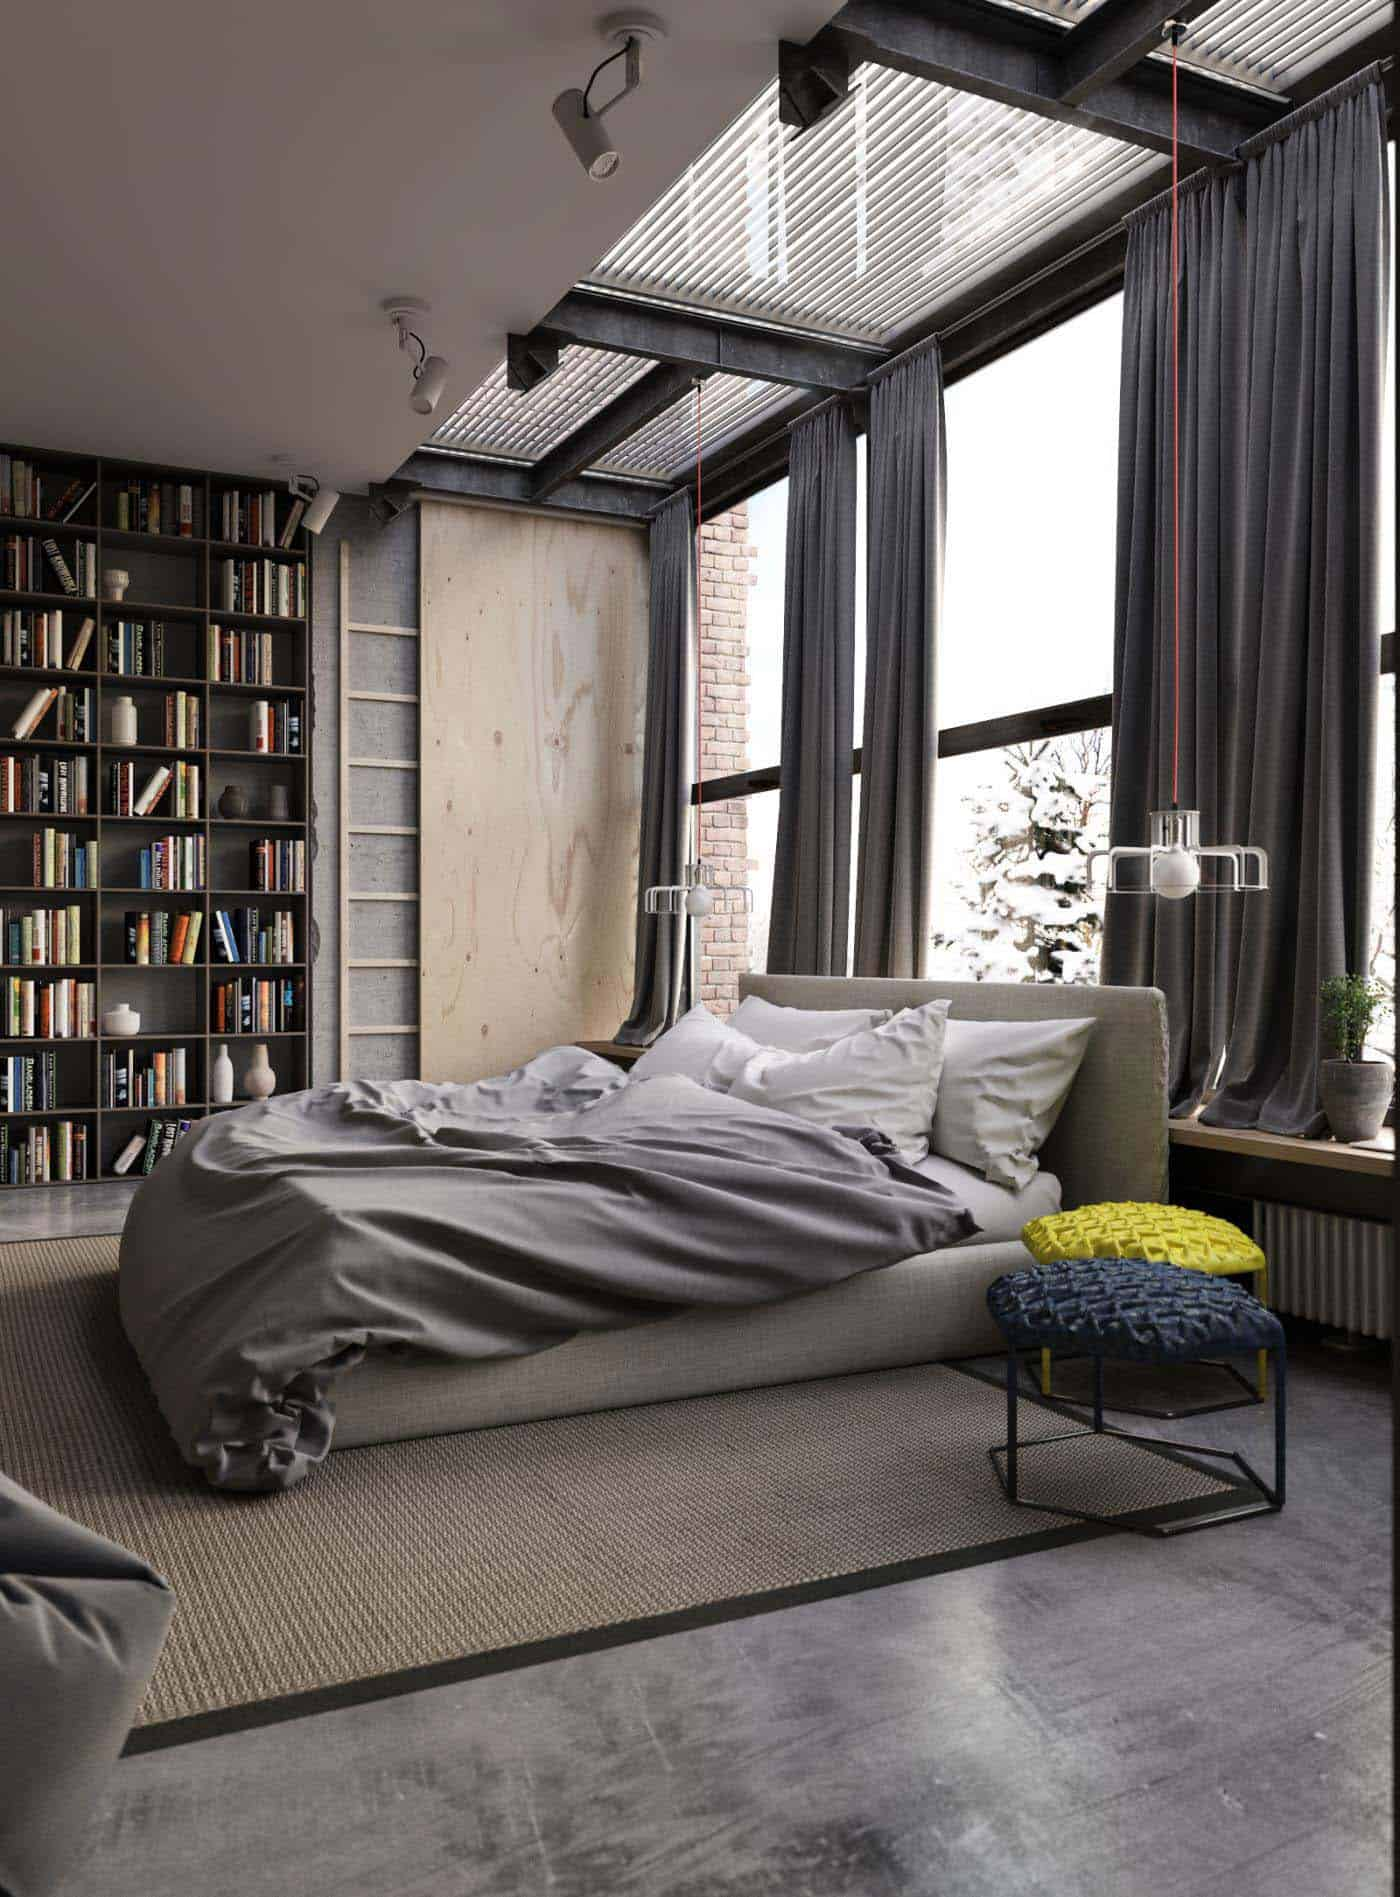 Industrial Style Bedroom Design Ideas-34-1 Kindesign